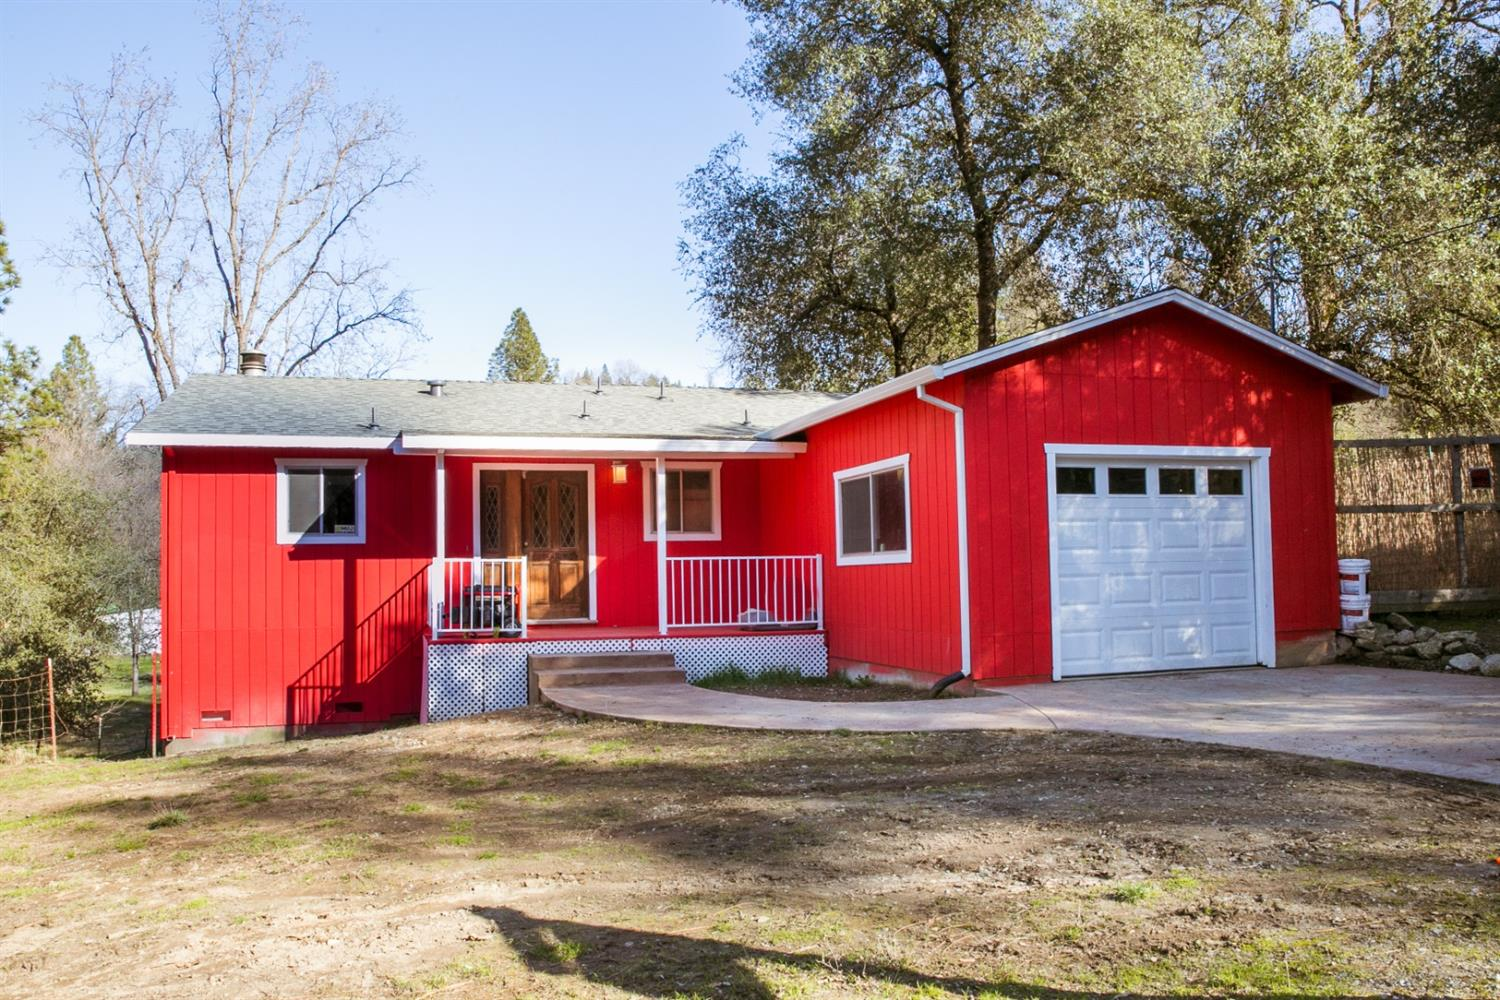 A darling gem close to the river on two lots. Listen to the birds singing while you sip your morning coffee on your porch. New paint, new flooring, new appliances among the upgrades already done. Just a few items left to finish up the remodel in progress. Cozy up next to the fireplace in the evenings and  a short walk to the community river access for a summer dip or picnic. Spectacular river access for locals only. A peaceful place to call home in the foothills that's ready for it's next chapter. Only 25 minutes from town. Large unfinished area under the home.